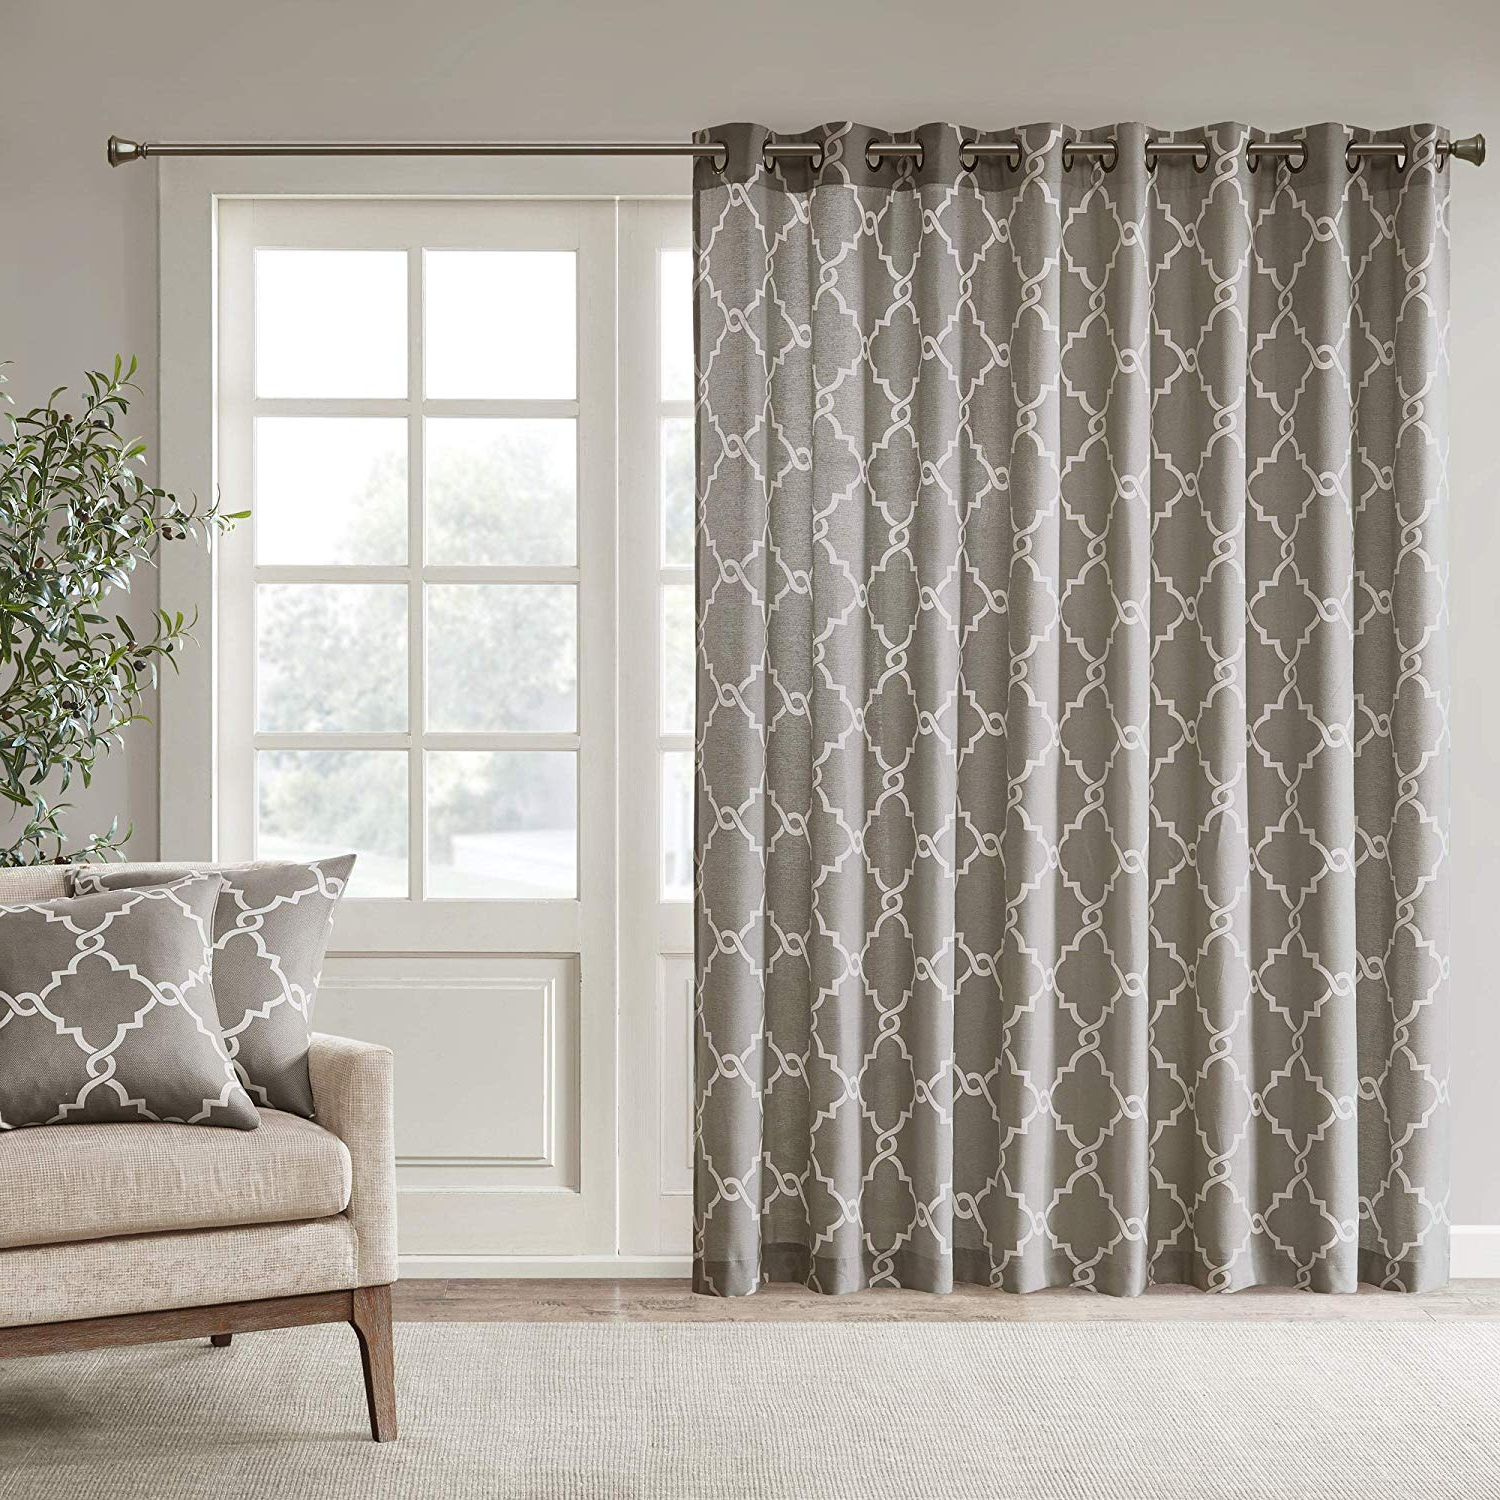 Recent Fretwork Print Pattern Single Curtain Panels In Madison Park Saratoga Room Darkening Curtain Fretwork Print 1 Window Panel  With Grommet Top Blackout Drapes For Bedroom And Dorm, 100X84, Grey (View 14 of 20)